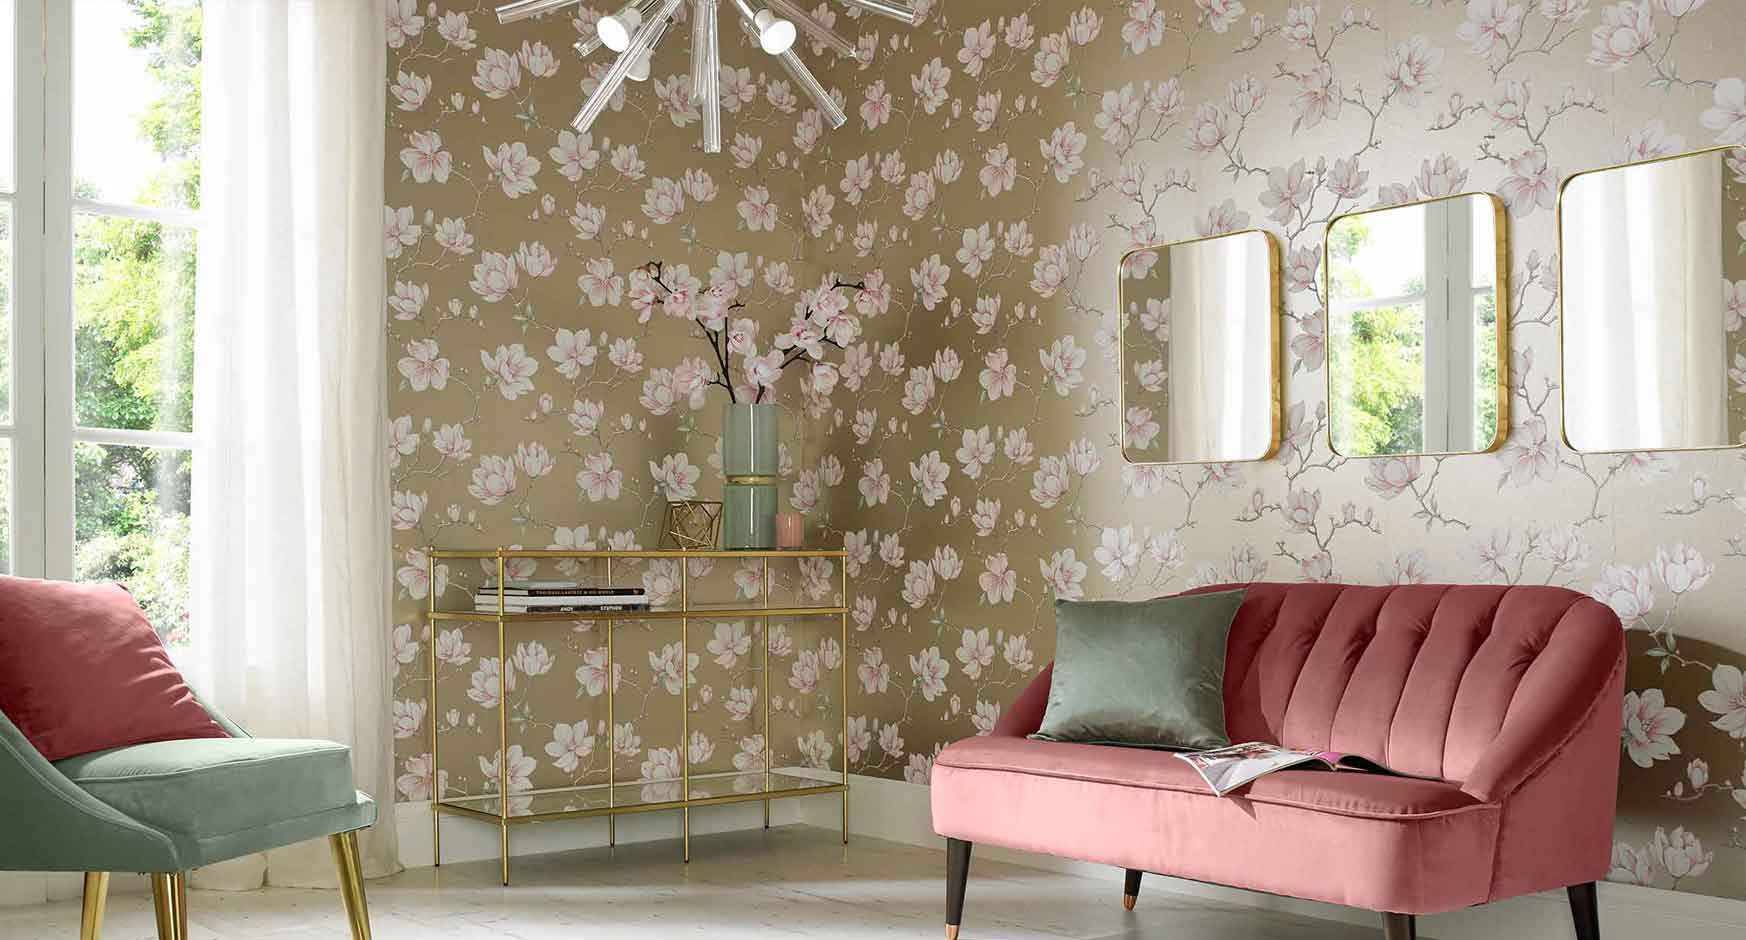 Living room wallpaper feature wall wallpaper graham - Best living room wallpaper designs ...